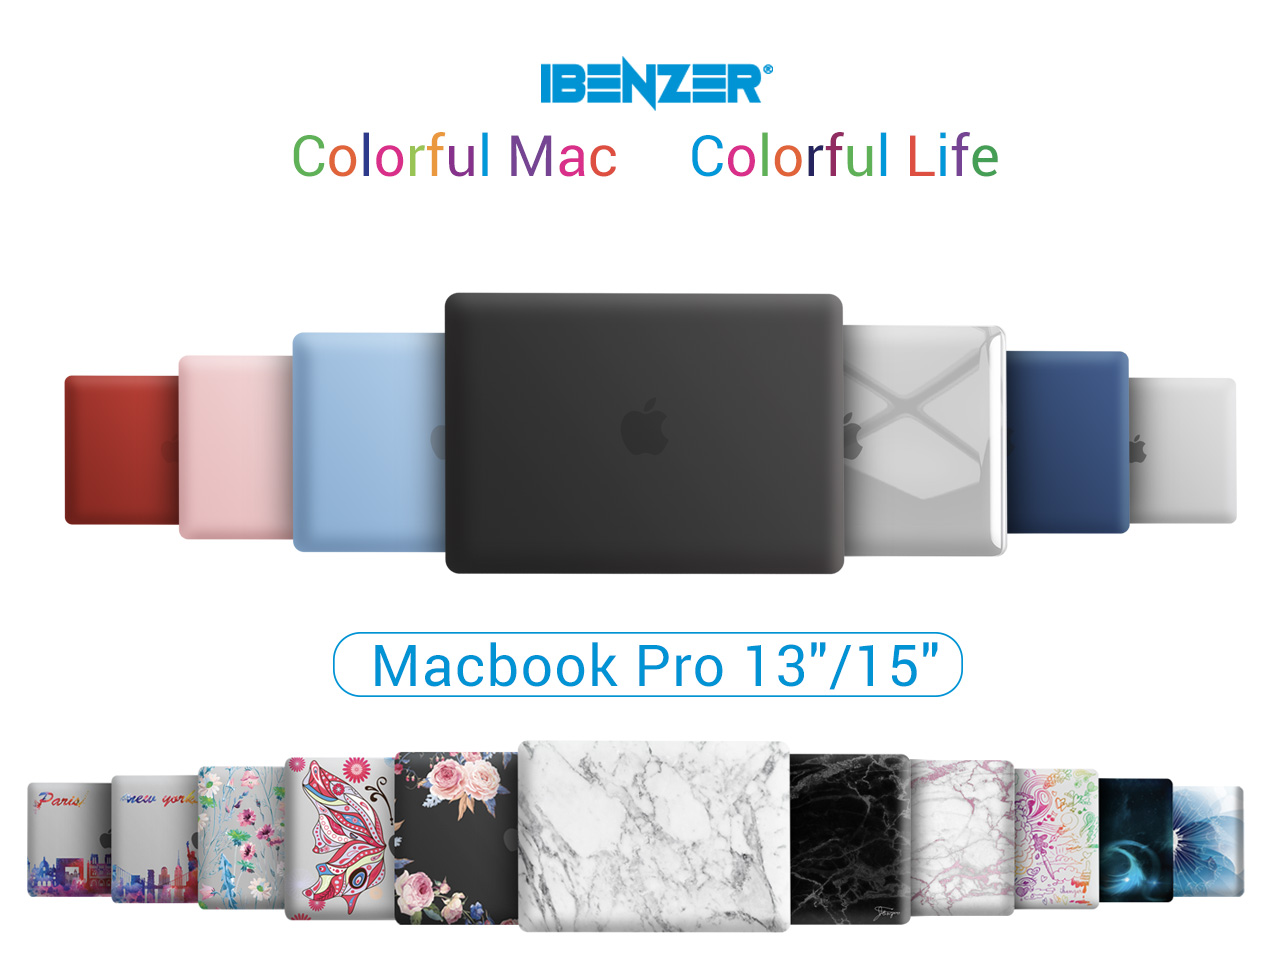 IBENZER MacBook Pro 13 Inch Case 2020 2019 2018 2017 2016 A2251 A2289 A2159 A1989 A1706 A1708, Hard Shell Case with Keyboard Cover for Apple Mac Pro 13 Touch Bar, Black, T13BK+1A